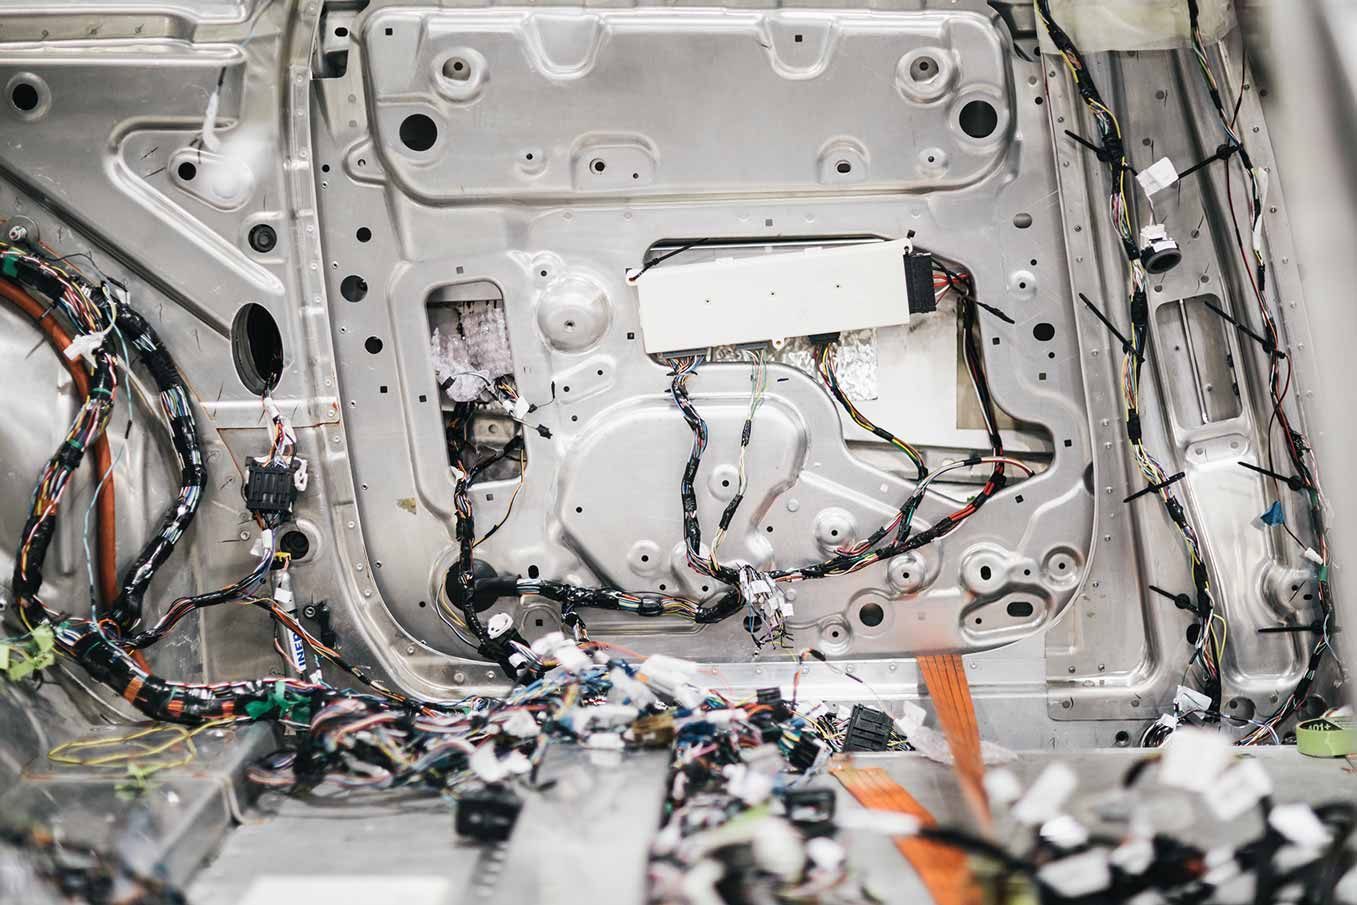 Behind The Scenes Inside Faraday Futures Lab Car Test Facility Full Wiring Harness Is A Biw Body In White That Houses Every Electrical Component With Exception Of Power Inverter And High Voltage System